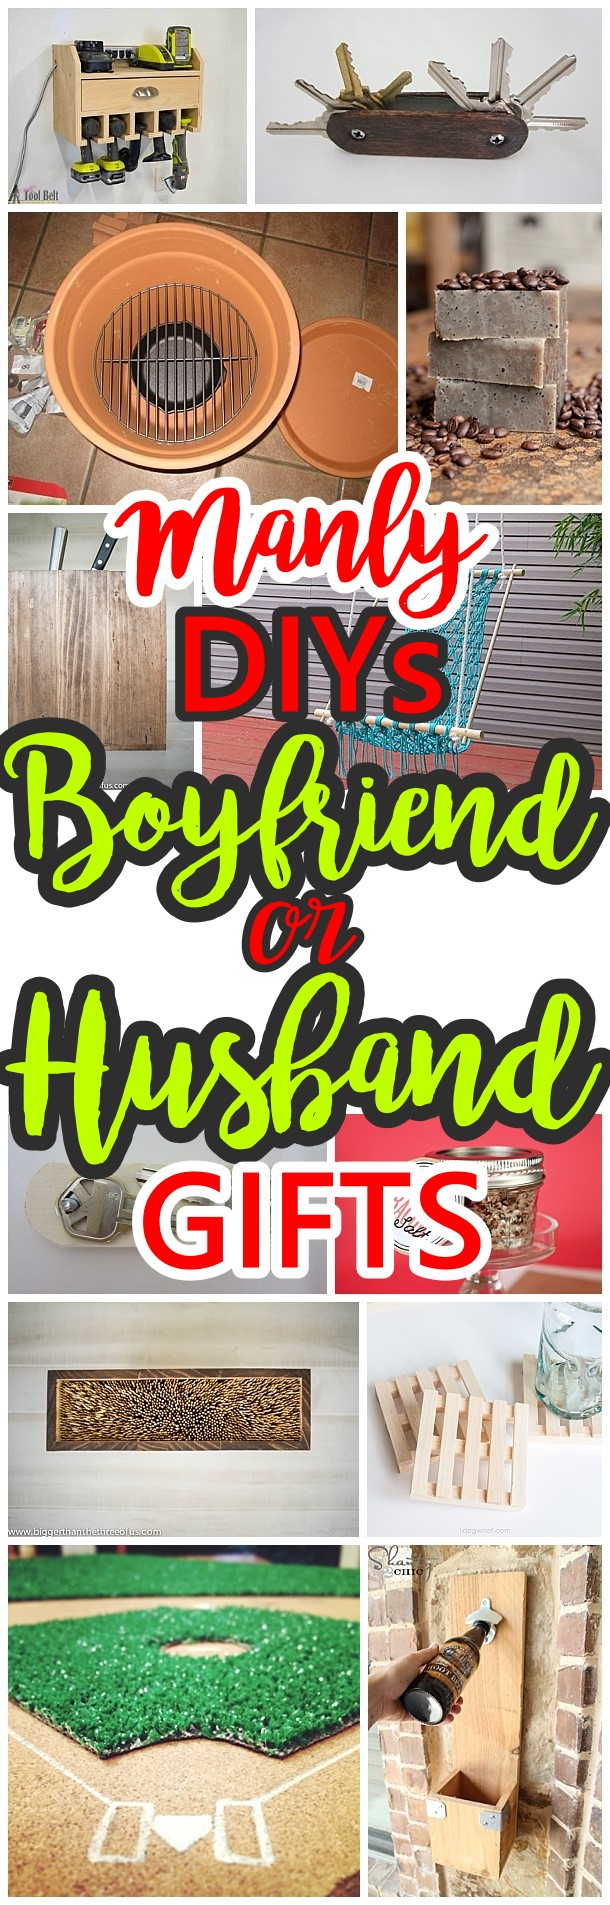 Manly Do It Yourself Boyfriend And Husband Gift Ideas Masculine Diy Crafts Projects Boyfriends Husbands Sons And Brothers Will Love Dreaming In Diy